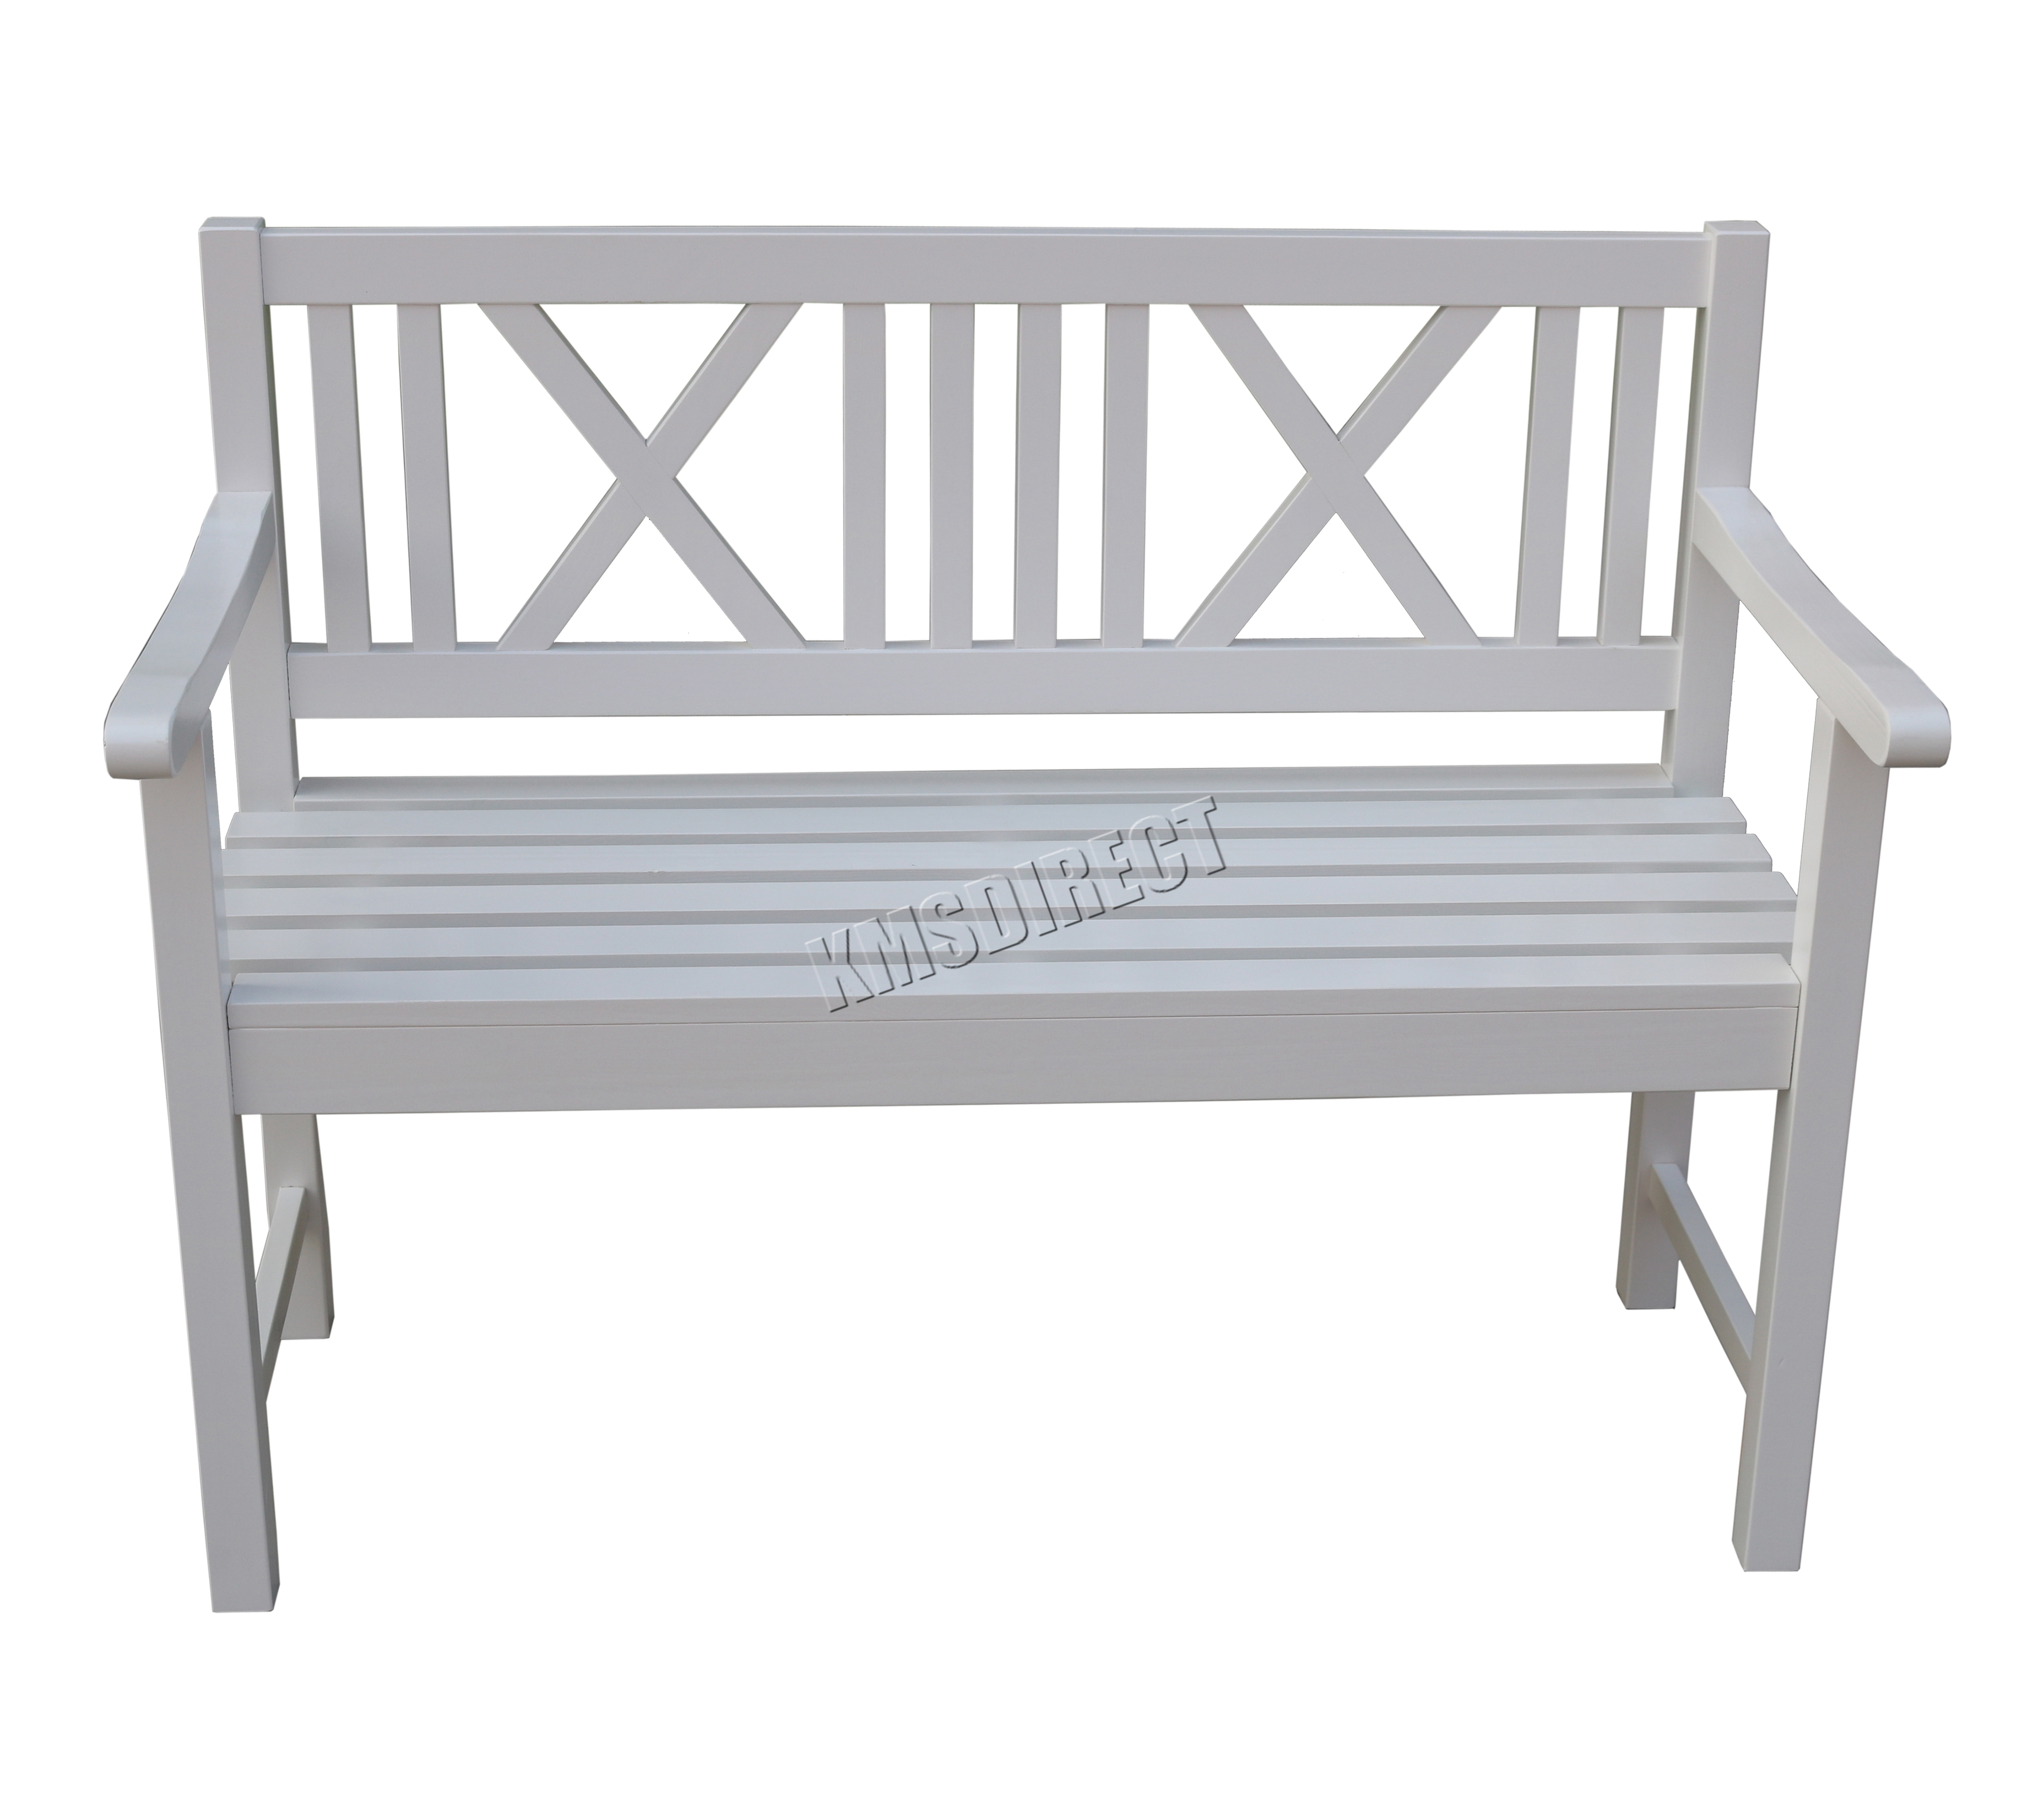 cast furnitures outdoor benches furniture minimalist garden gallery antique design decoration chairs home white set iron bench rectangle